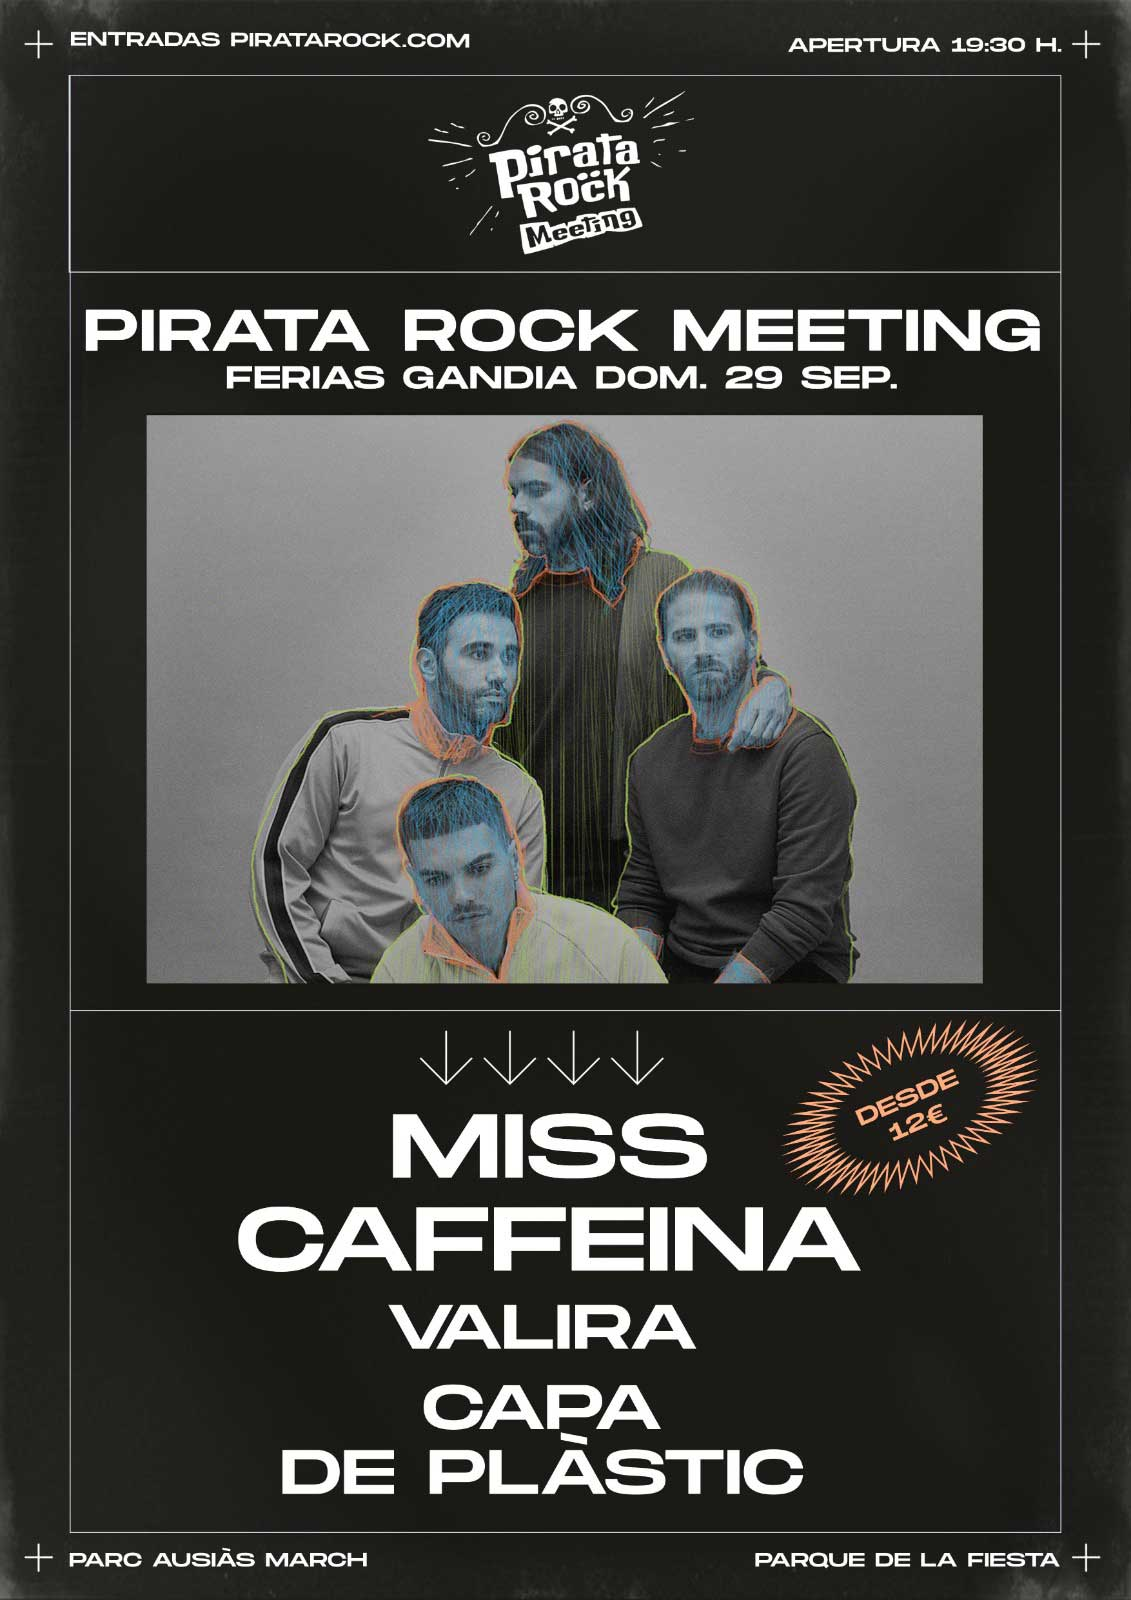 cartel del Pirata rock meeting de las fiestas Gandia 2019